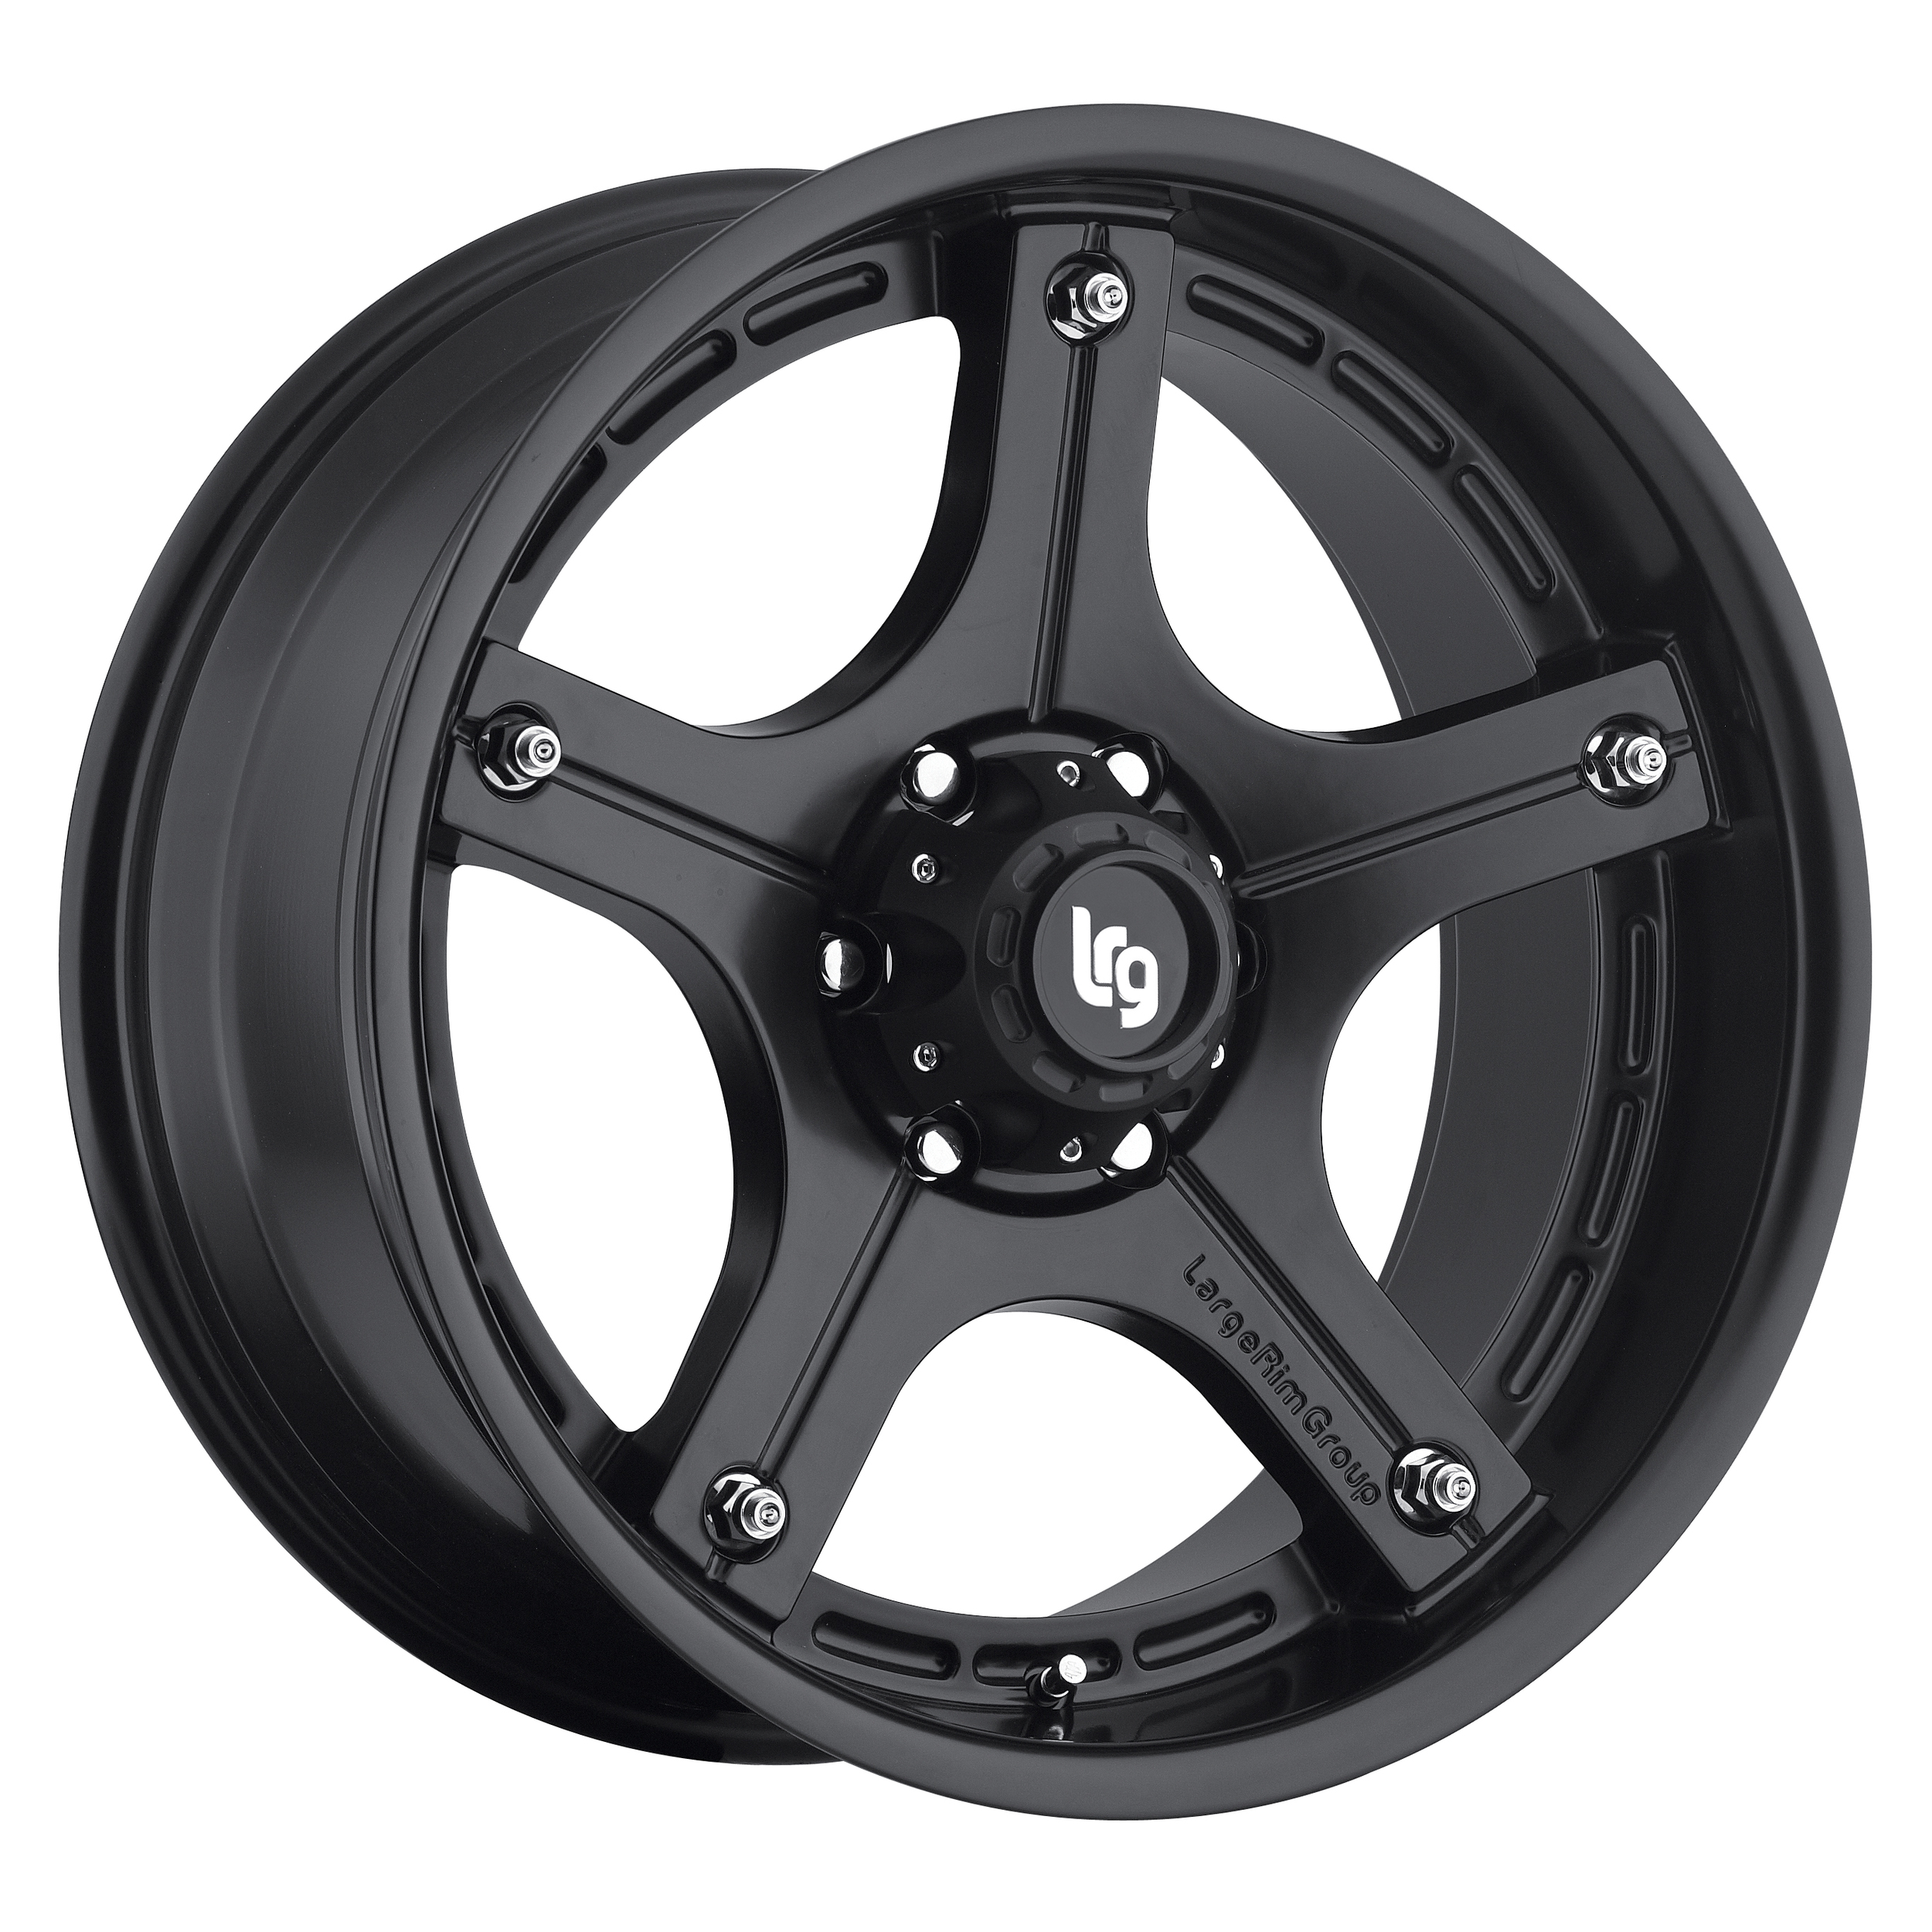 LRG Rims Series 106 Matte Black Wheels